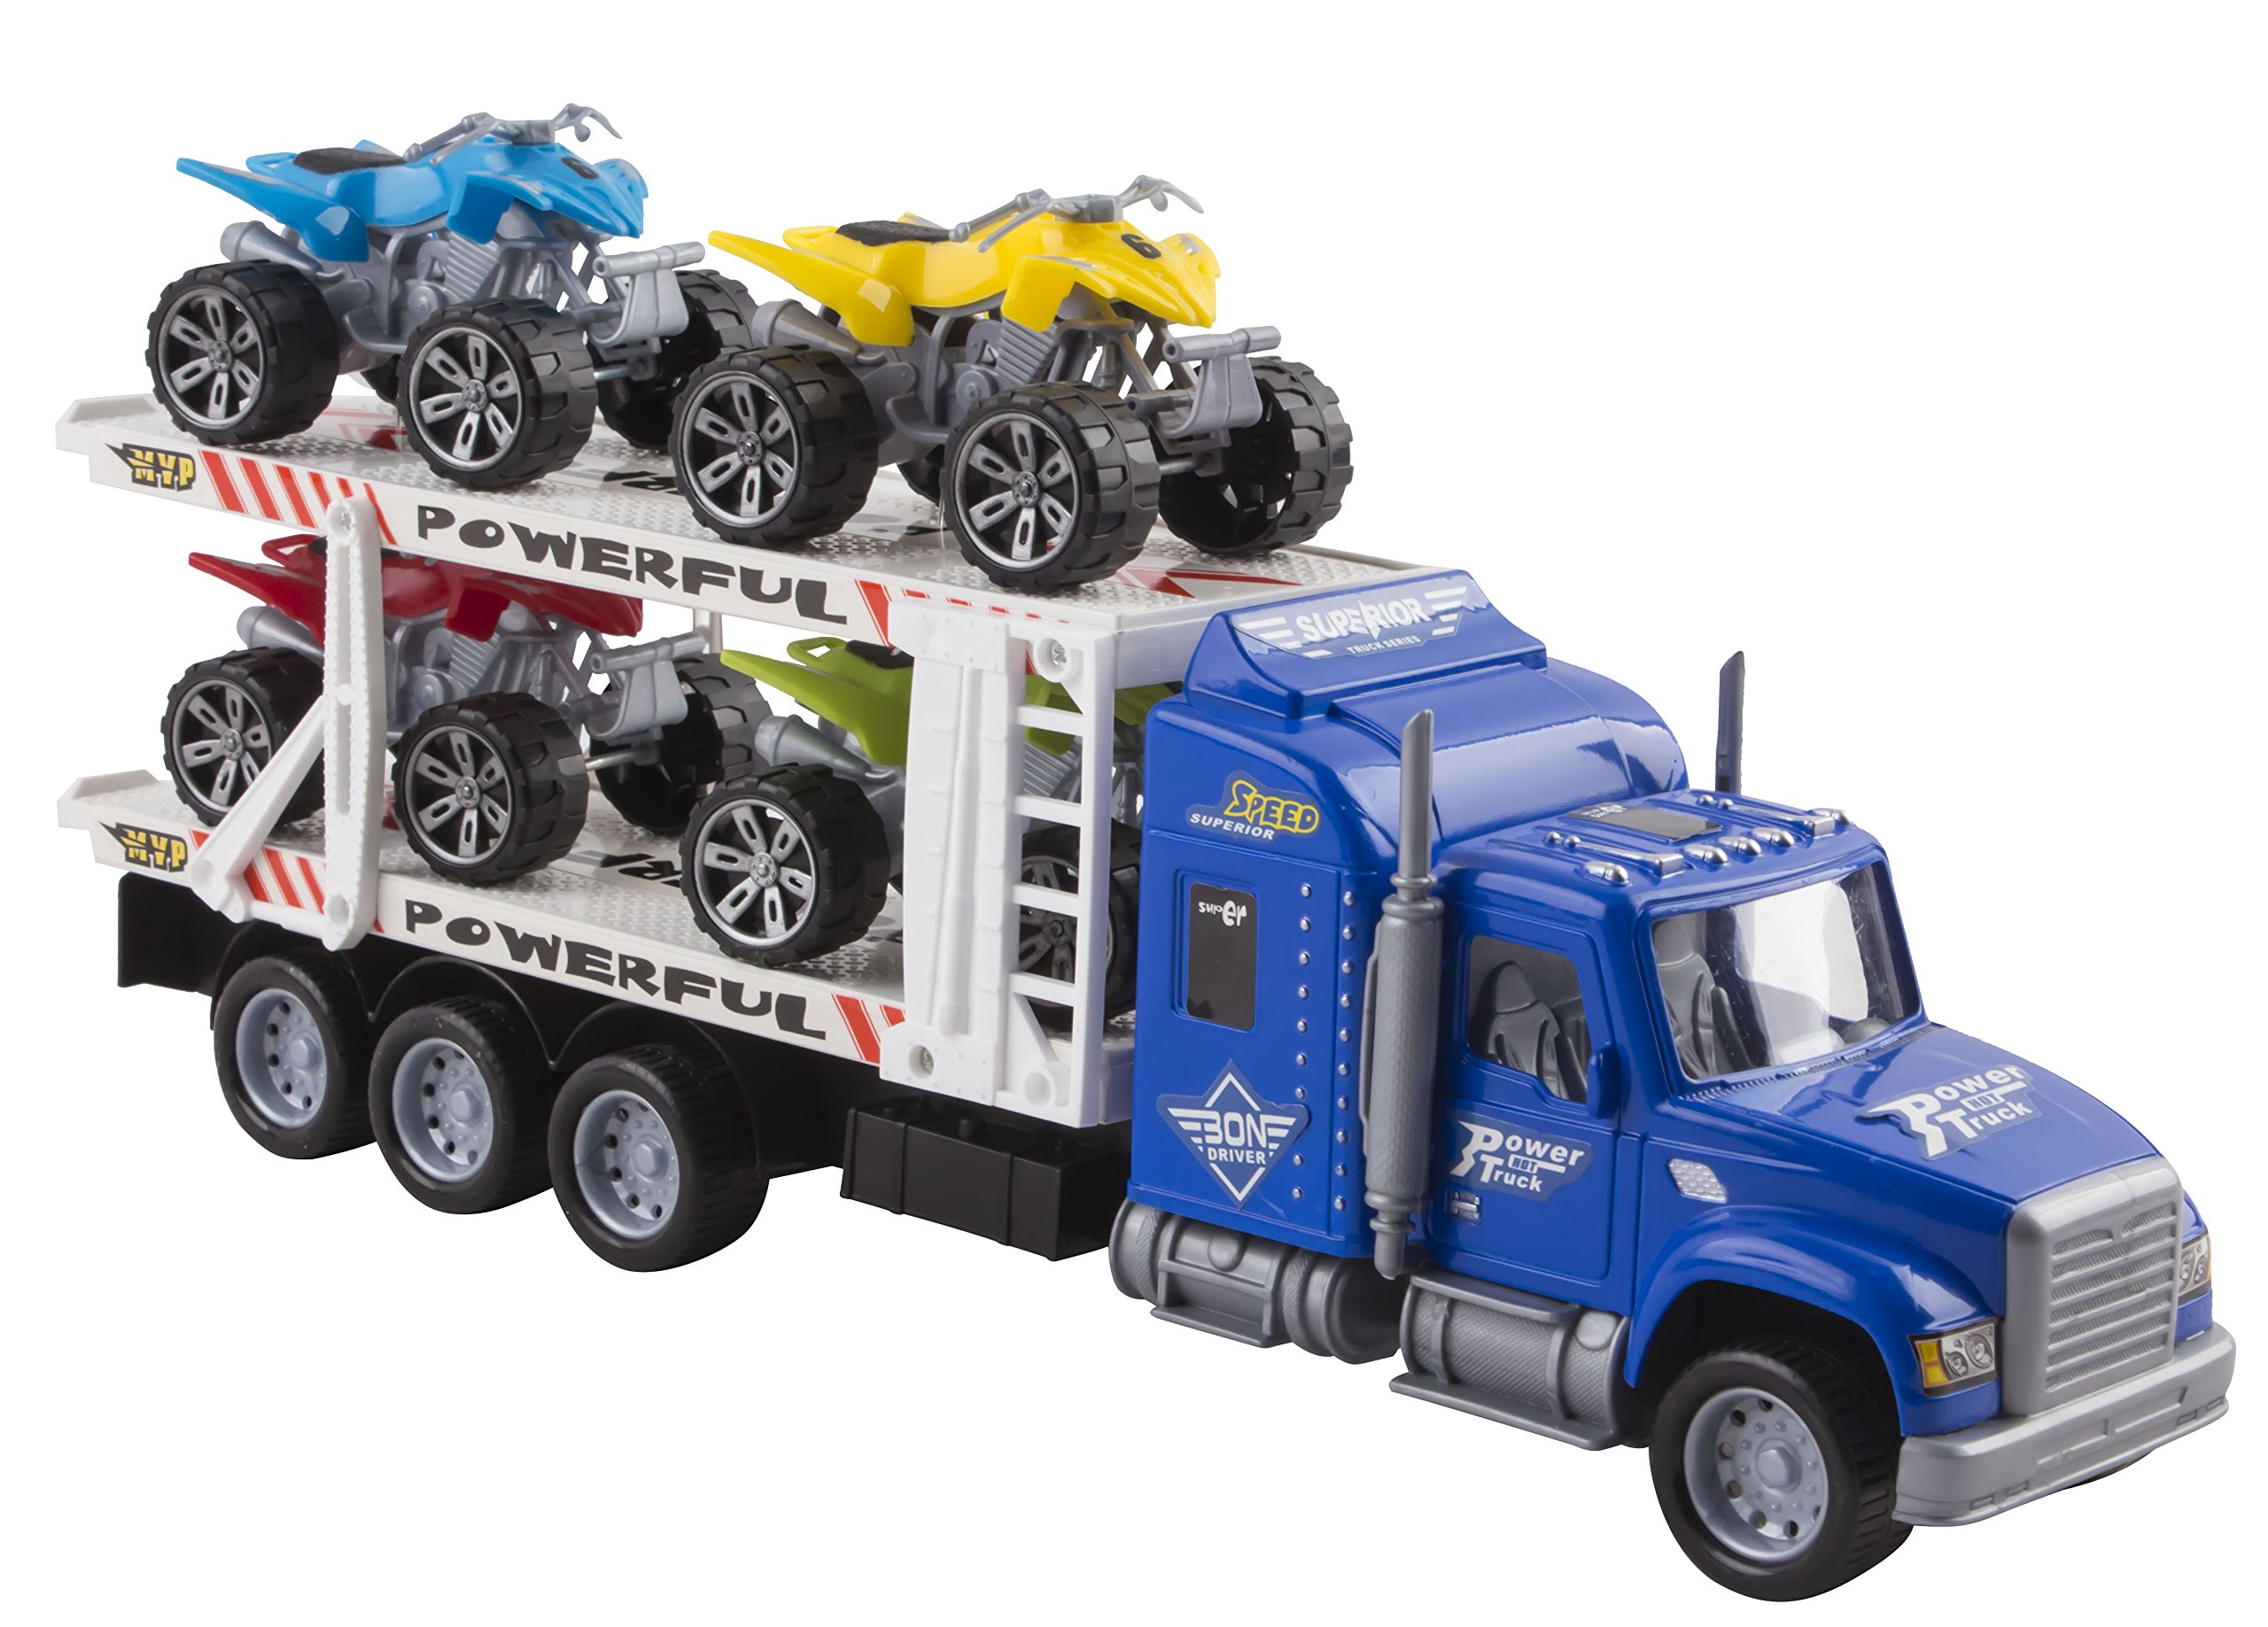 "Toy Truck Transporter Trailer Semi Truck 14.5"" Children's Friction Toy Truck w/ 4 Toy ATVs, No Batteries Required (Blue Truck)"